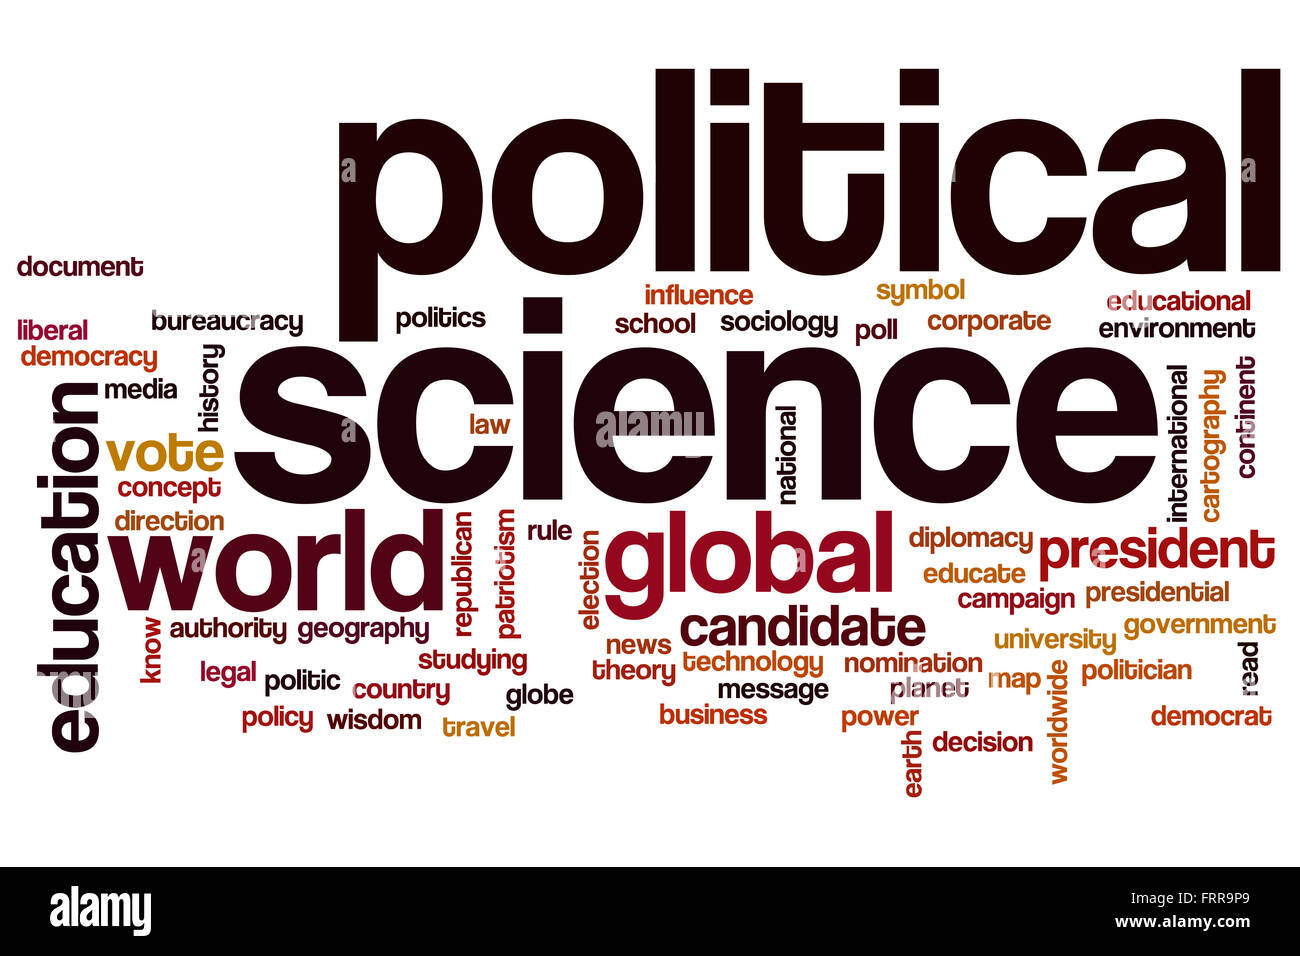 Political science word cloud concept stock photo 100701505 alamy political science word cloud concept biocorpaavc Choice Image